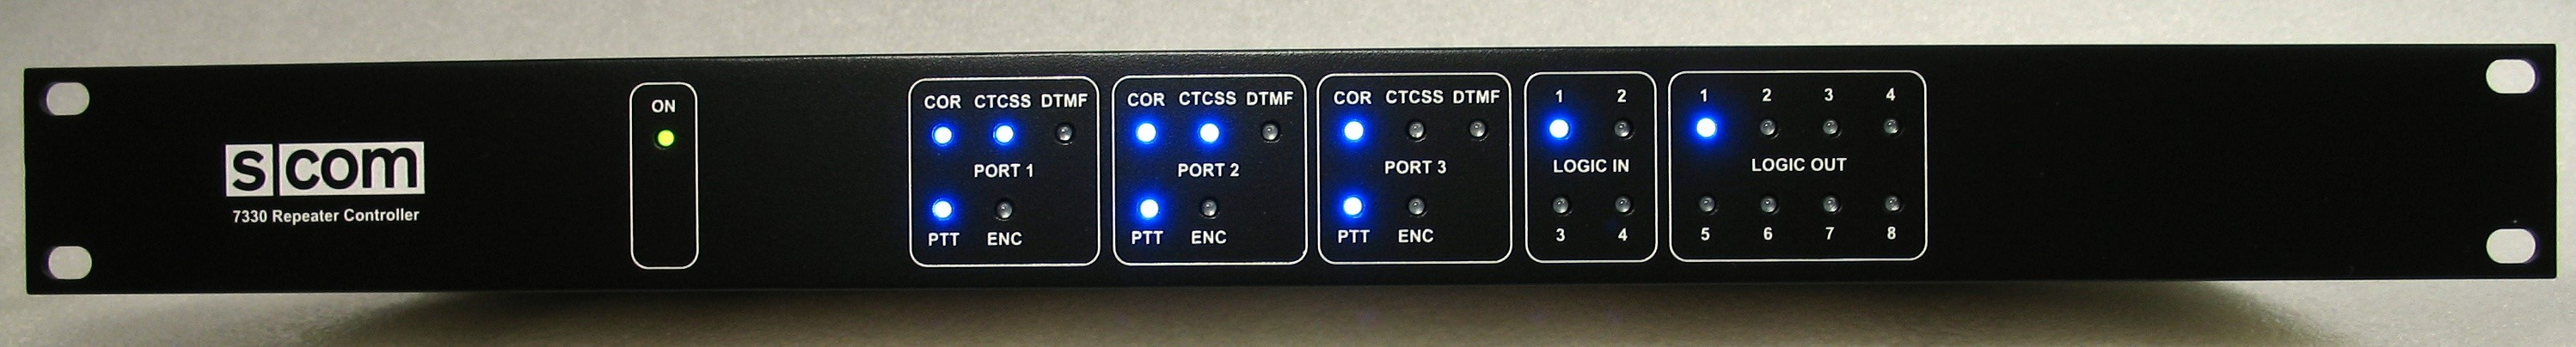 7330 Triple Repeater Controller | S-COM, LLC